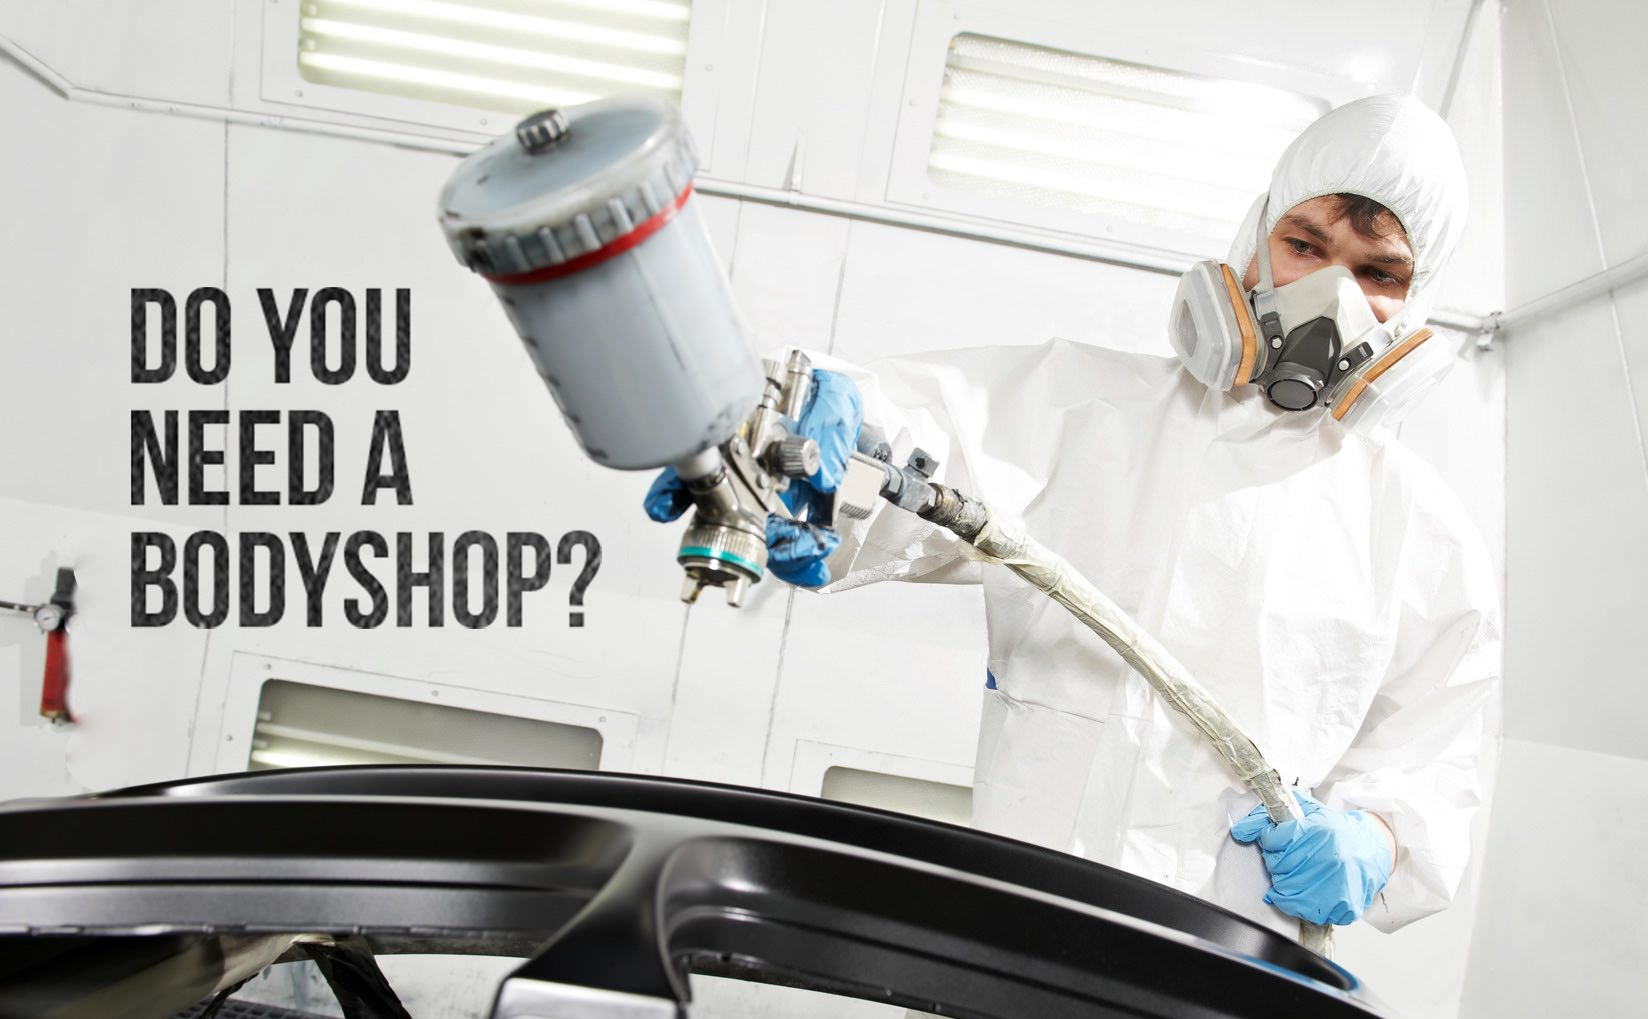 Do You Need a Bodyshop?